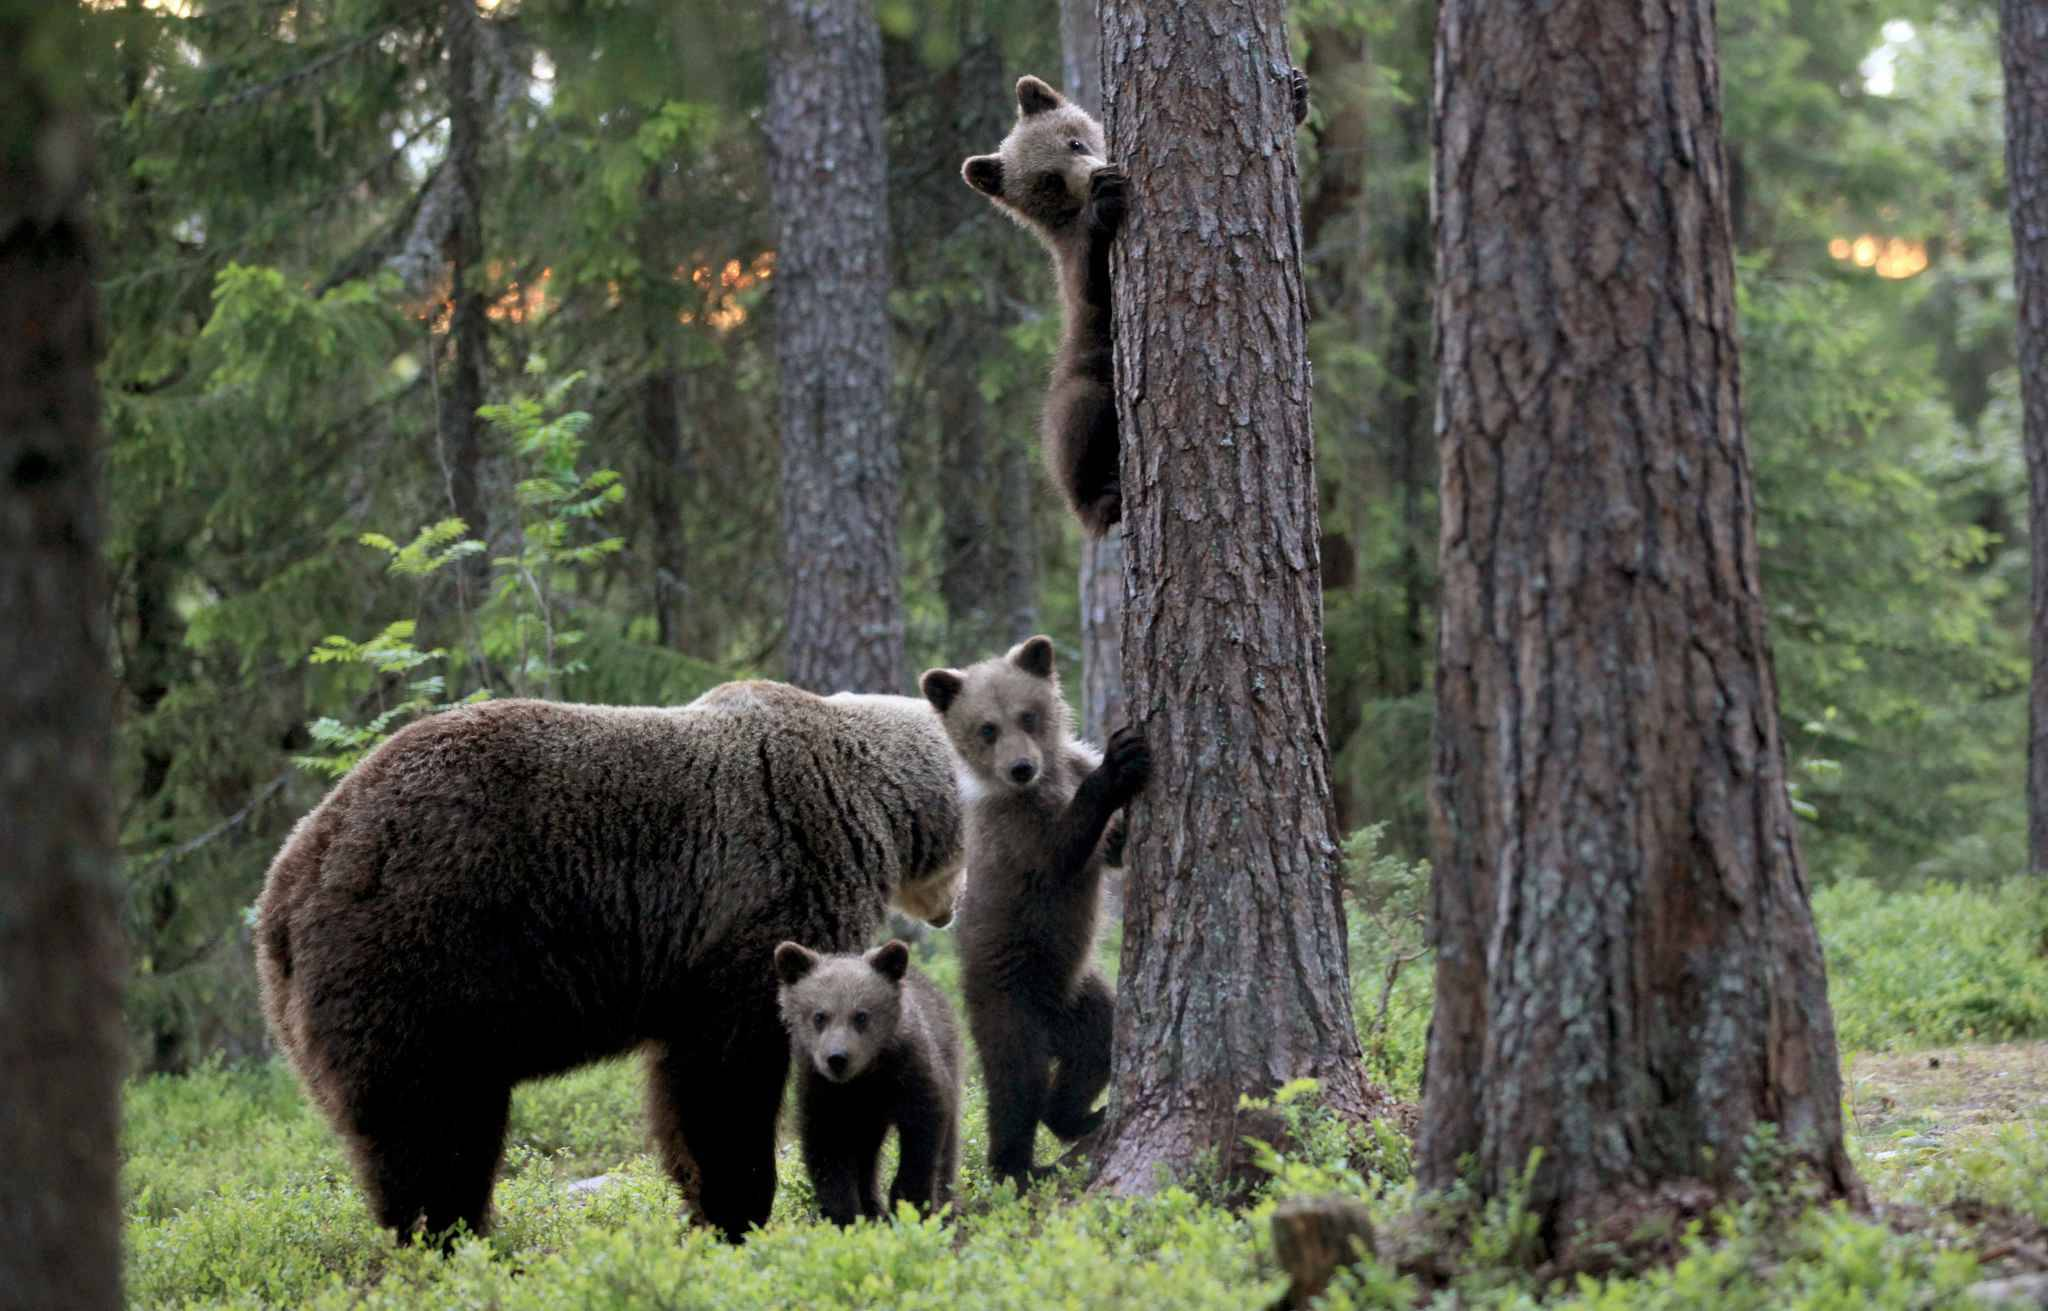 *MANDATORY BYLINE* PIC FROM Valtteri Mulkahainen/Caters News - (PICTURED: Bear cubs with their mum playing a game peek a boo as they climb the trees in a forest in Suomussalmi, Finland) - These baby bears were eager to play with the camera from behind a tree  and the resulting snaps are adorable.The mama bear was photographed with her three cubs in a forest in Suomussalmi, Finland as they enjoyed some quality family time together.Capturing the adorable close up family snaps from a hide was 57-year-old school teacher Valtteri Mulkahainen.